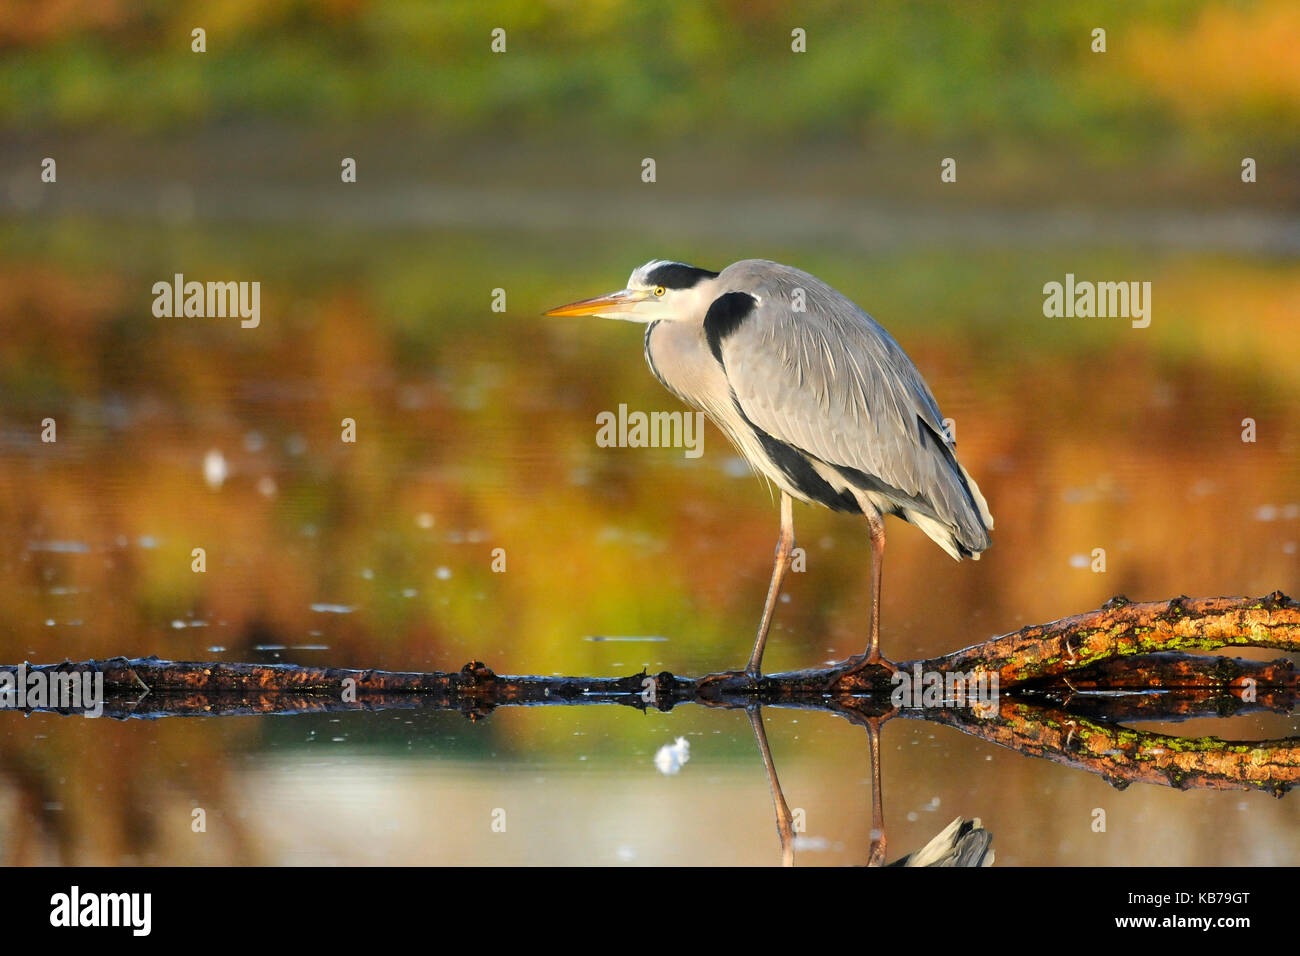 Grey Heron (Ardea cinerea) standing on a branch in the water, hunting, The Netherlands - Stock Image